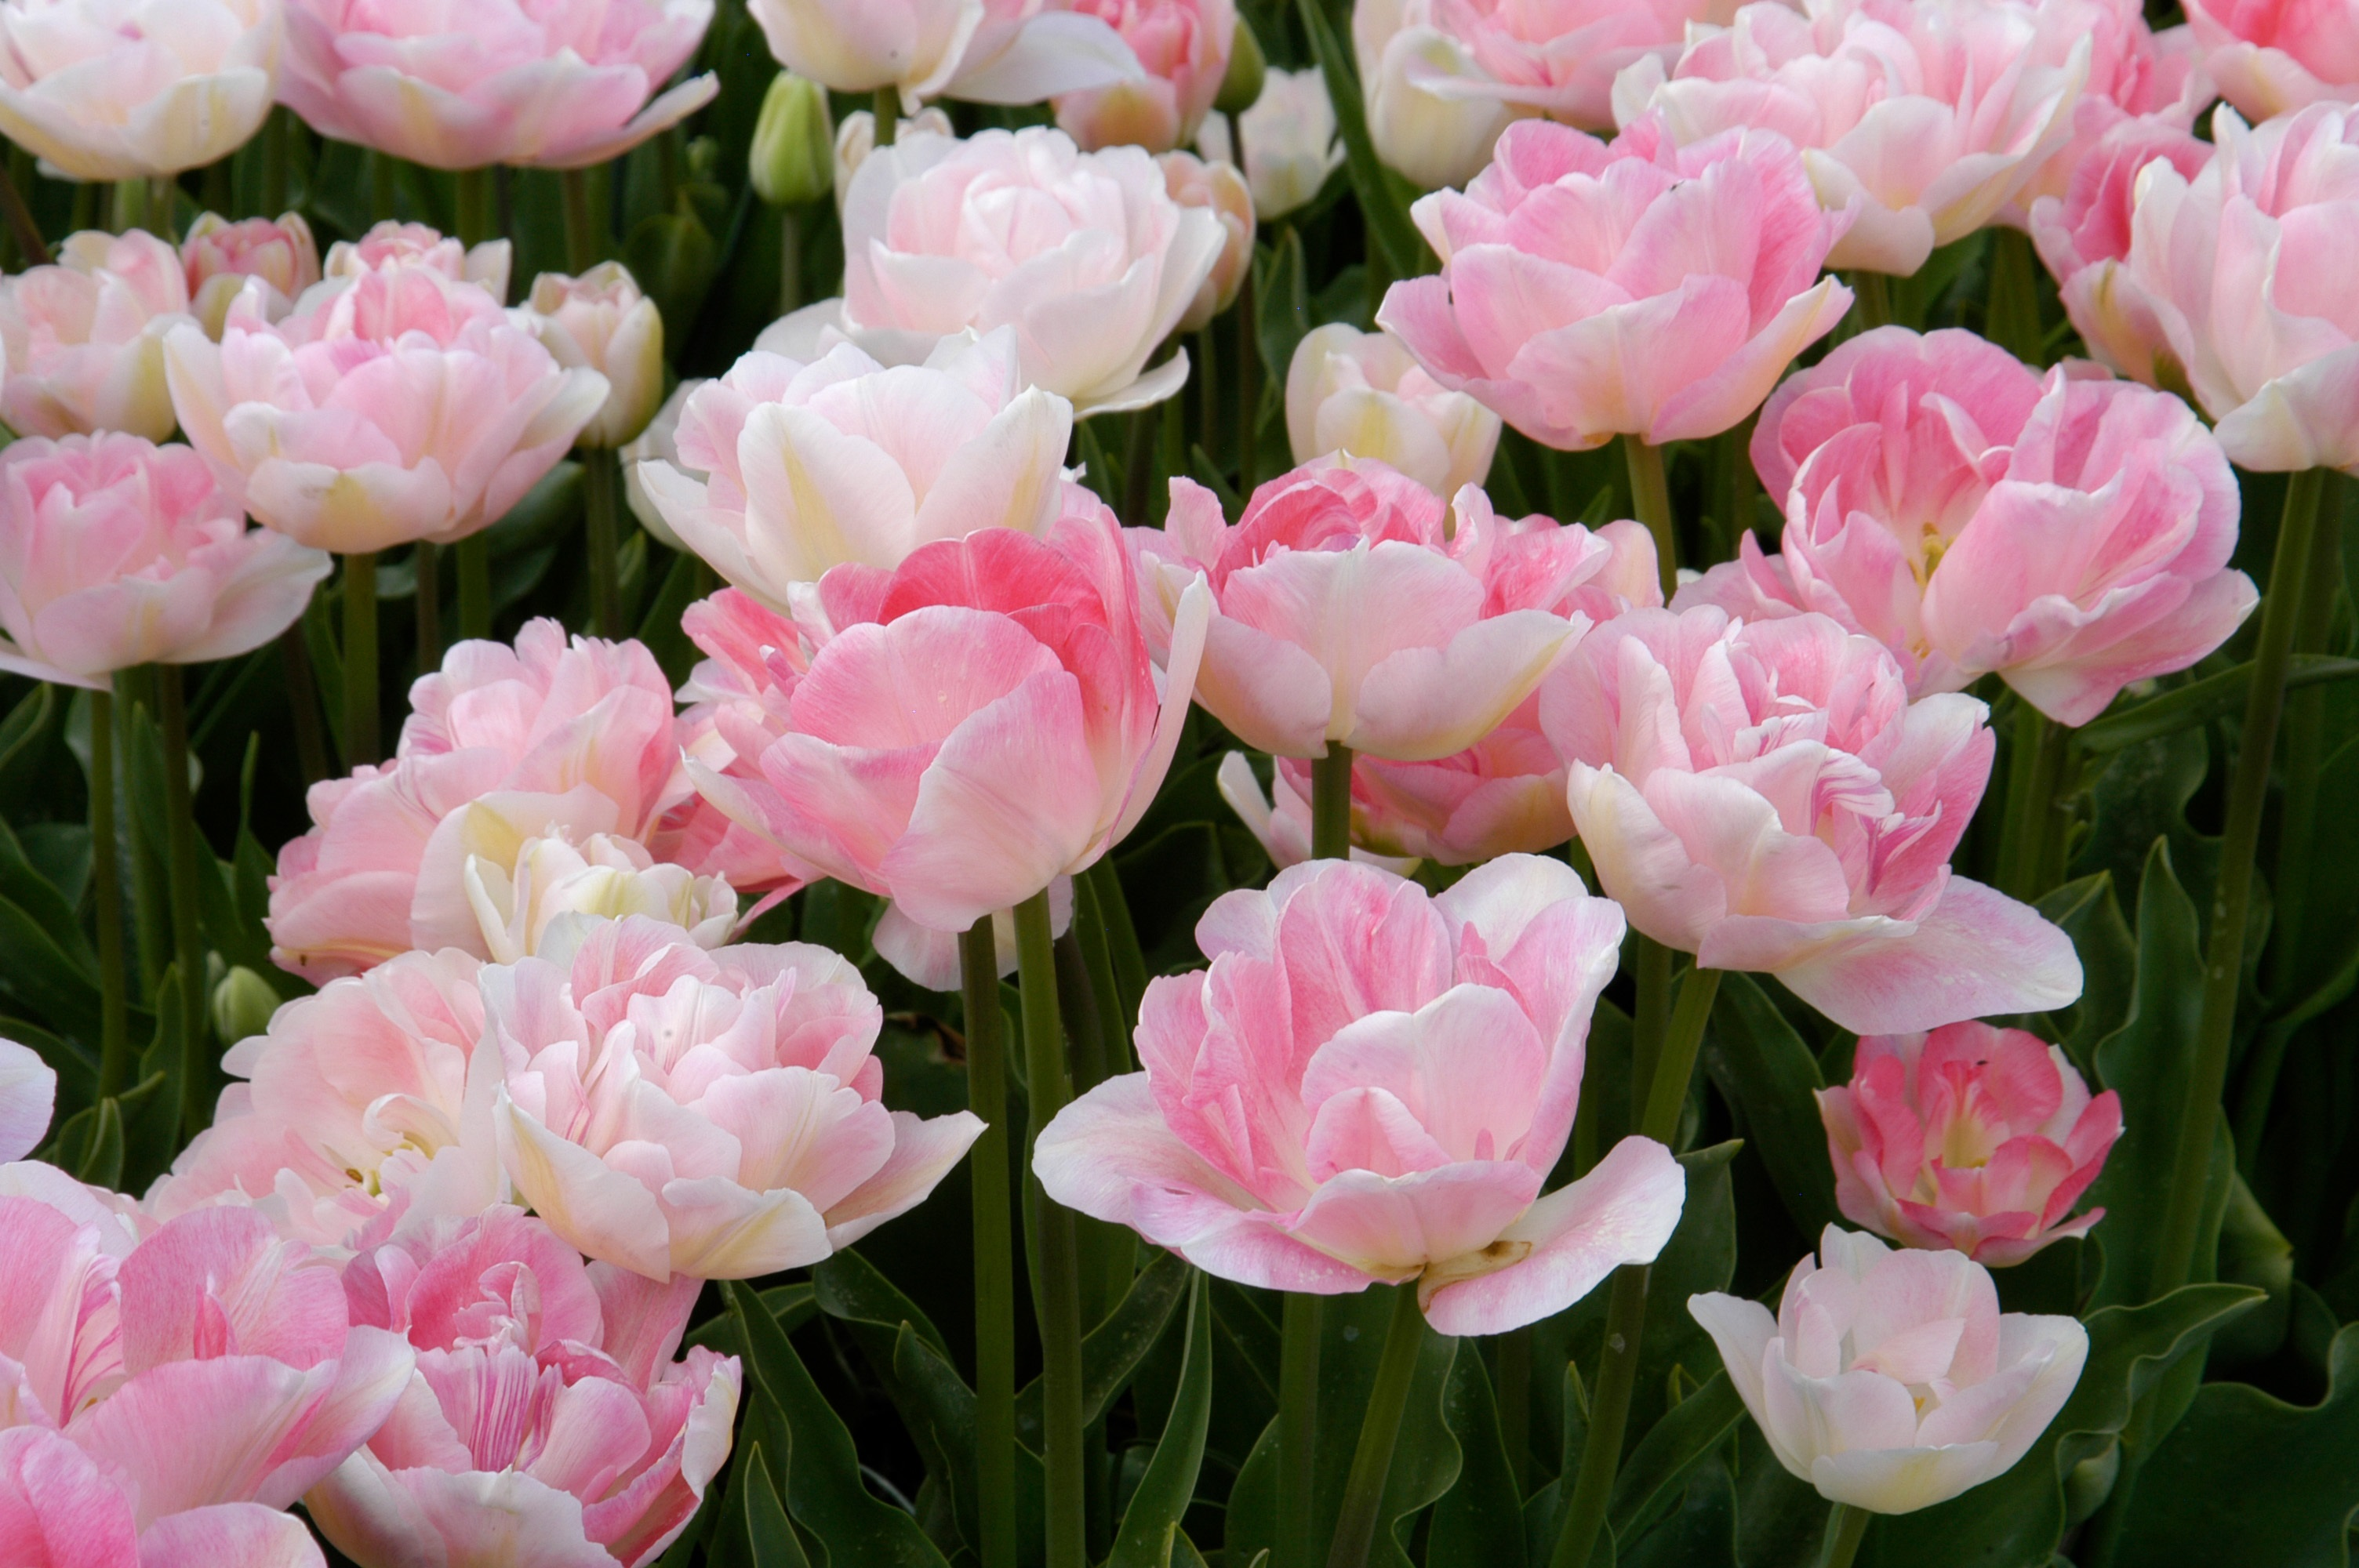 Sally Cunningham: Plant some bulbs  You'll be glad you did  – The